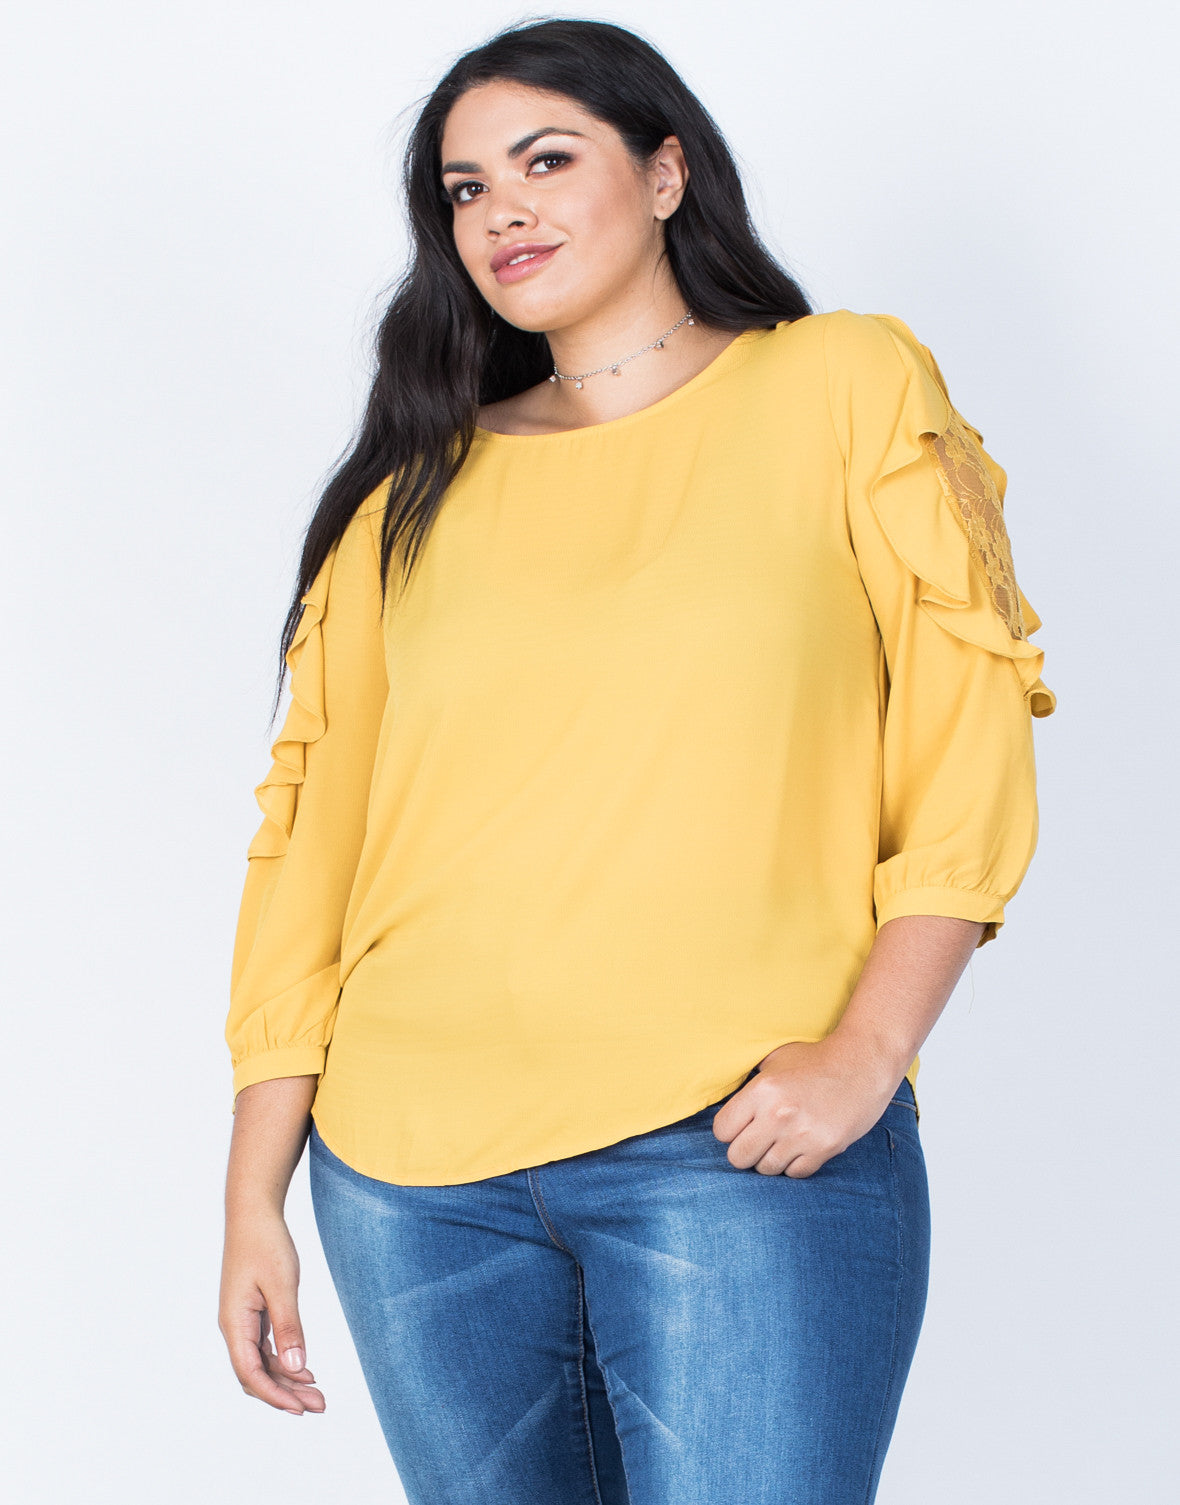 Our plus size clothing features flawless fits, comfortable fabrics, and versatile trends designed for sizes 10 – 30 (check out our size guide) We design our tops, dresses, & jeans with your body in mind to accent your curves just right.